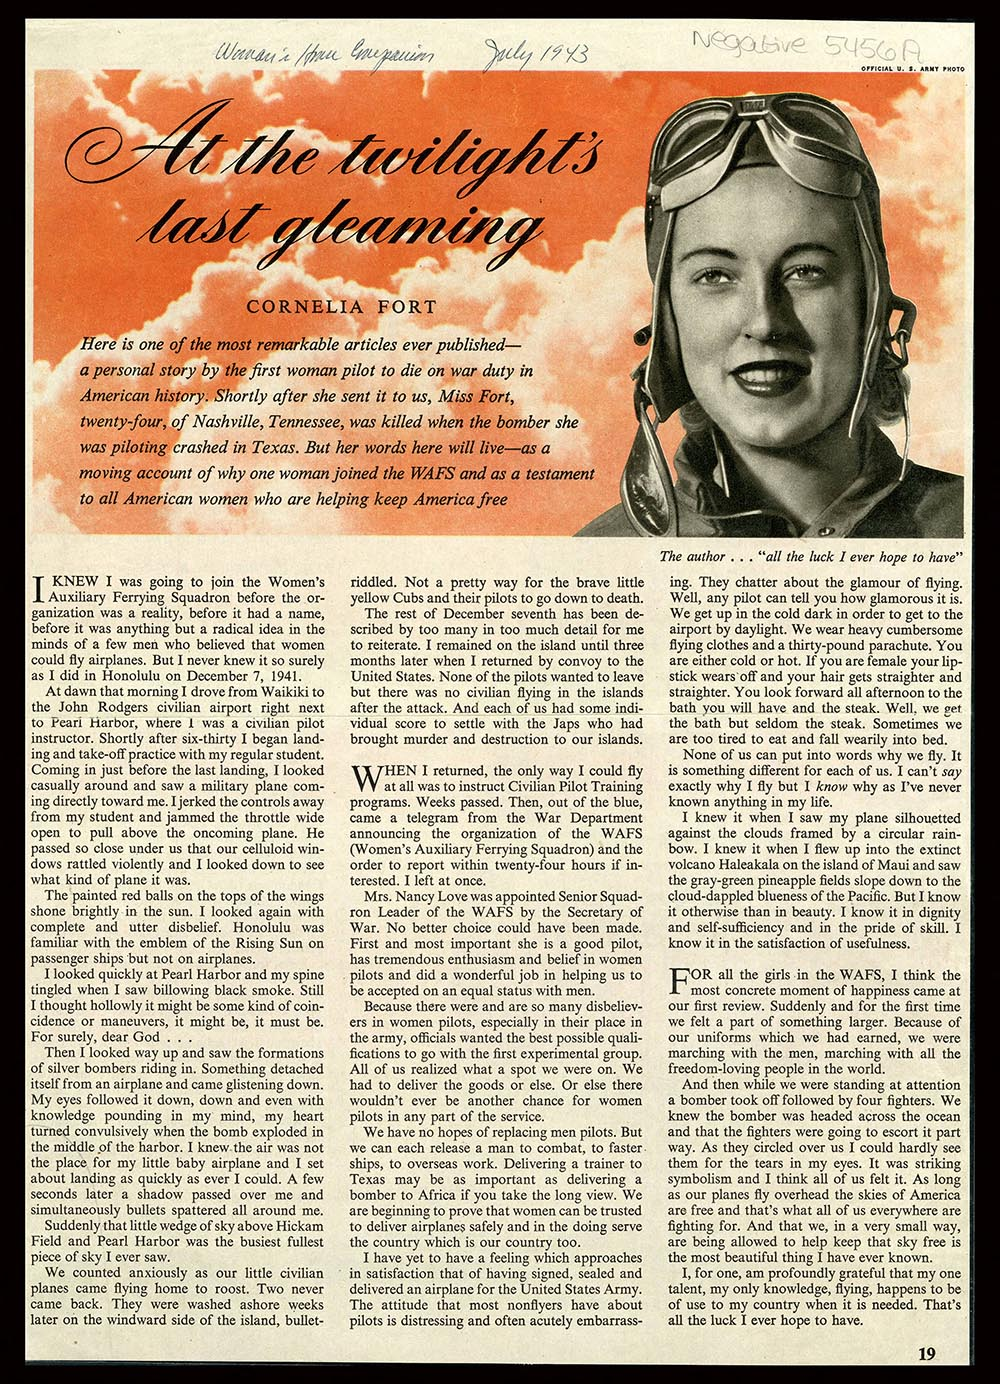 Cornelia Fort wrote this article describing her experience the day Pearl Harbor was bombed